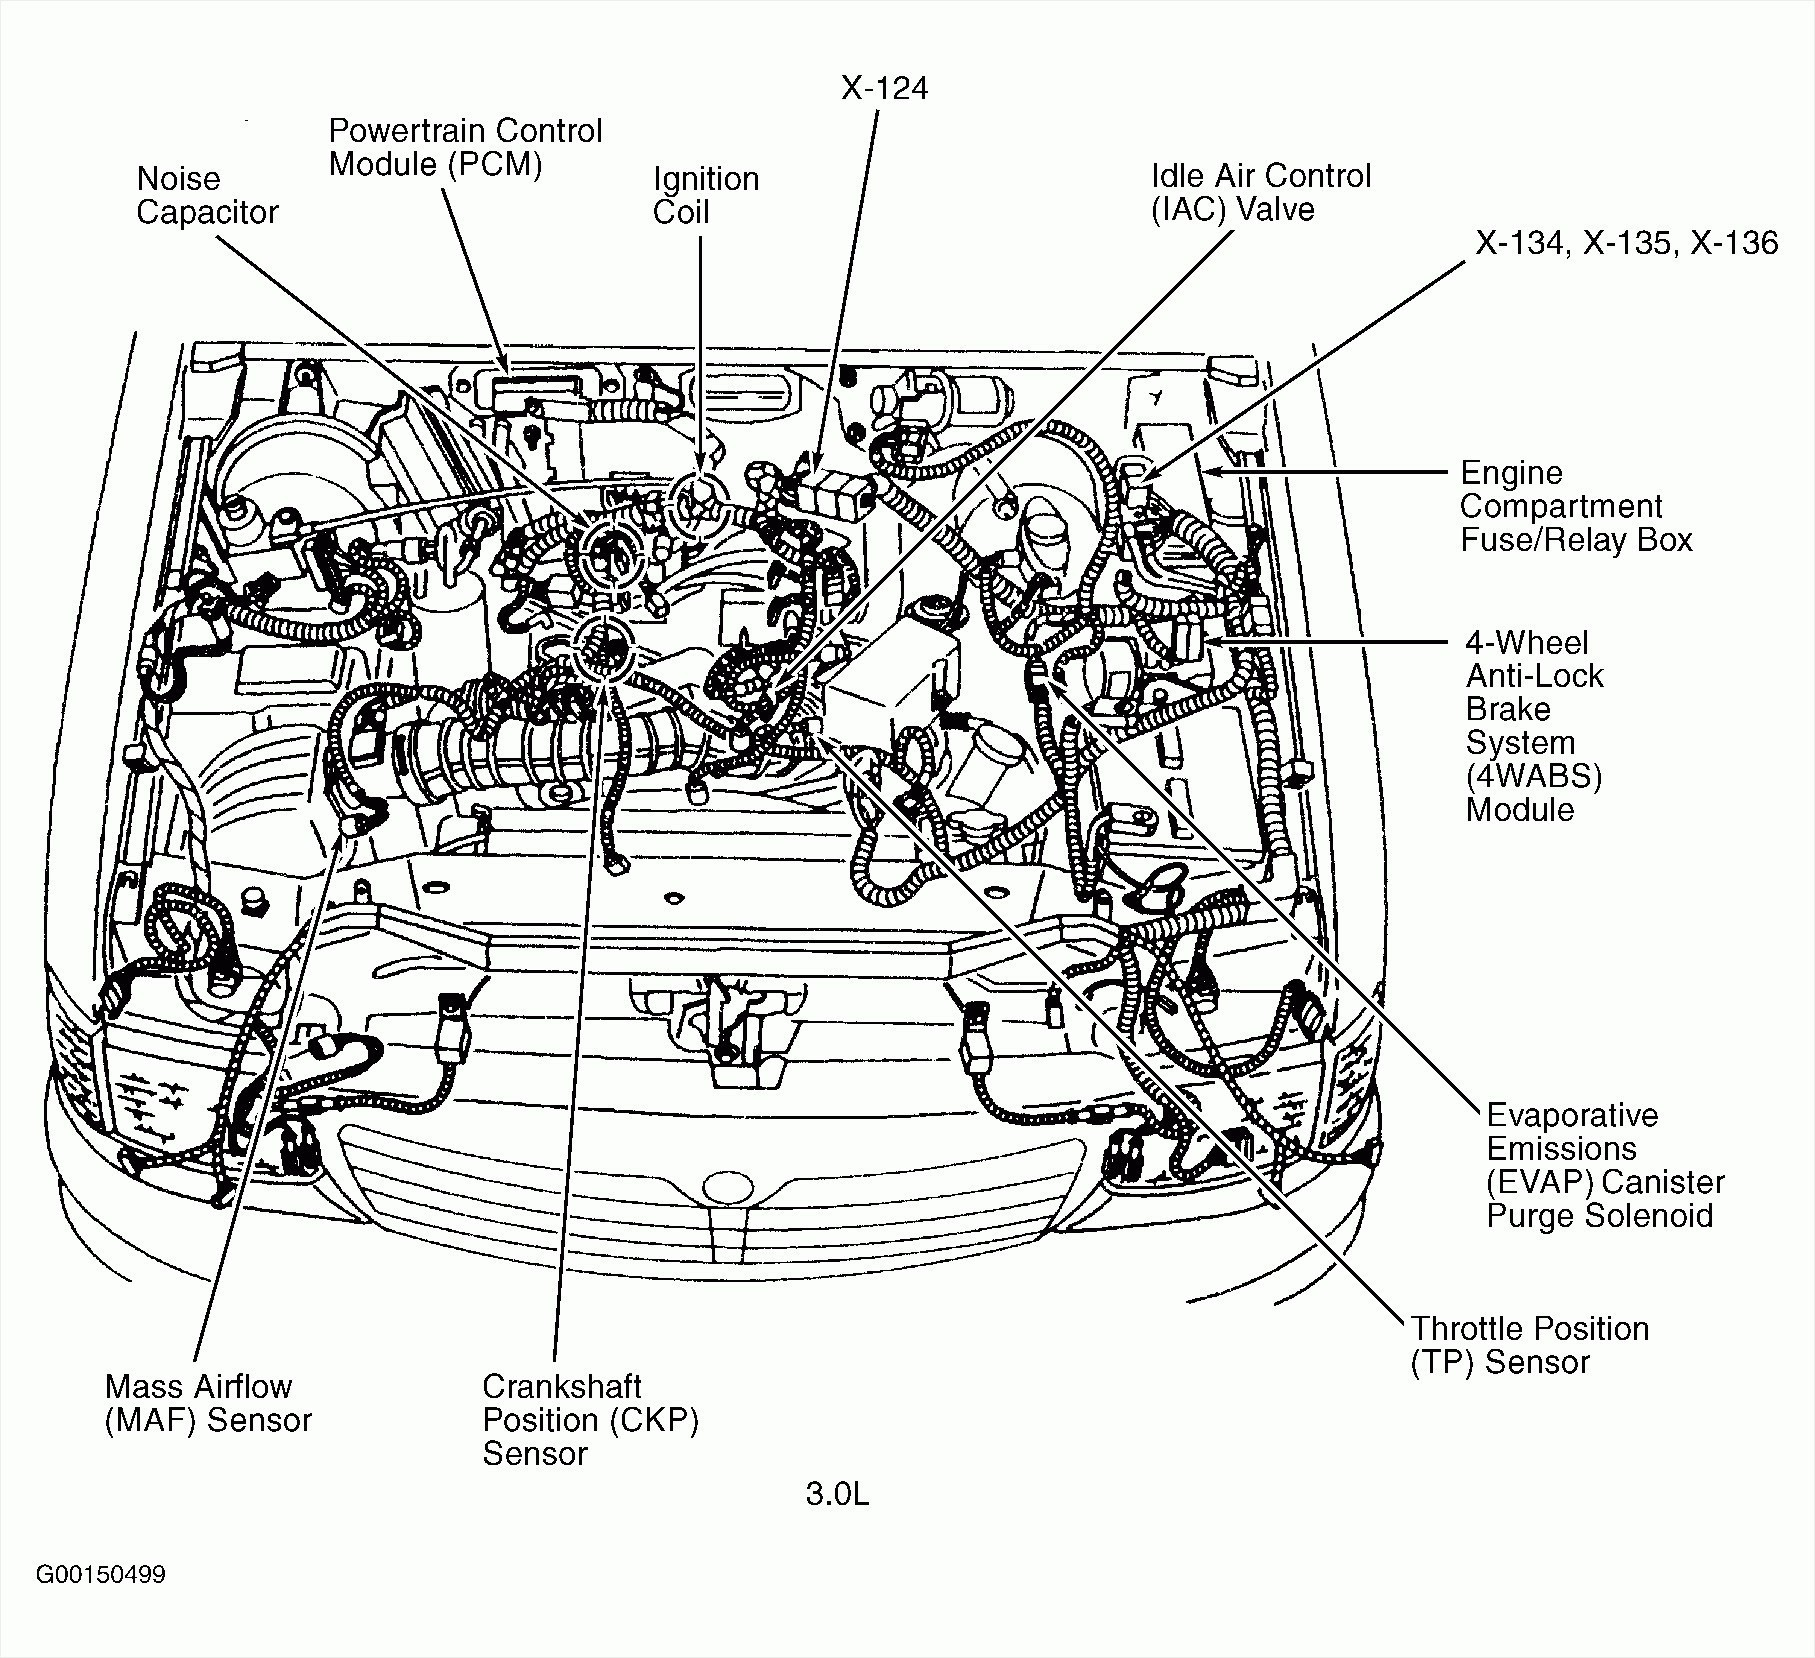 2000 Pontiac Grand Prix Engine Diagram 1997 Grand Am Engine Diagram Wiring Diagram Inside